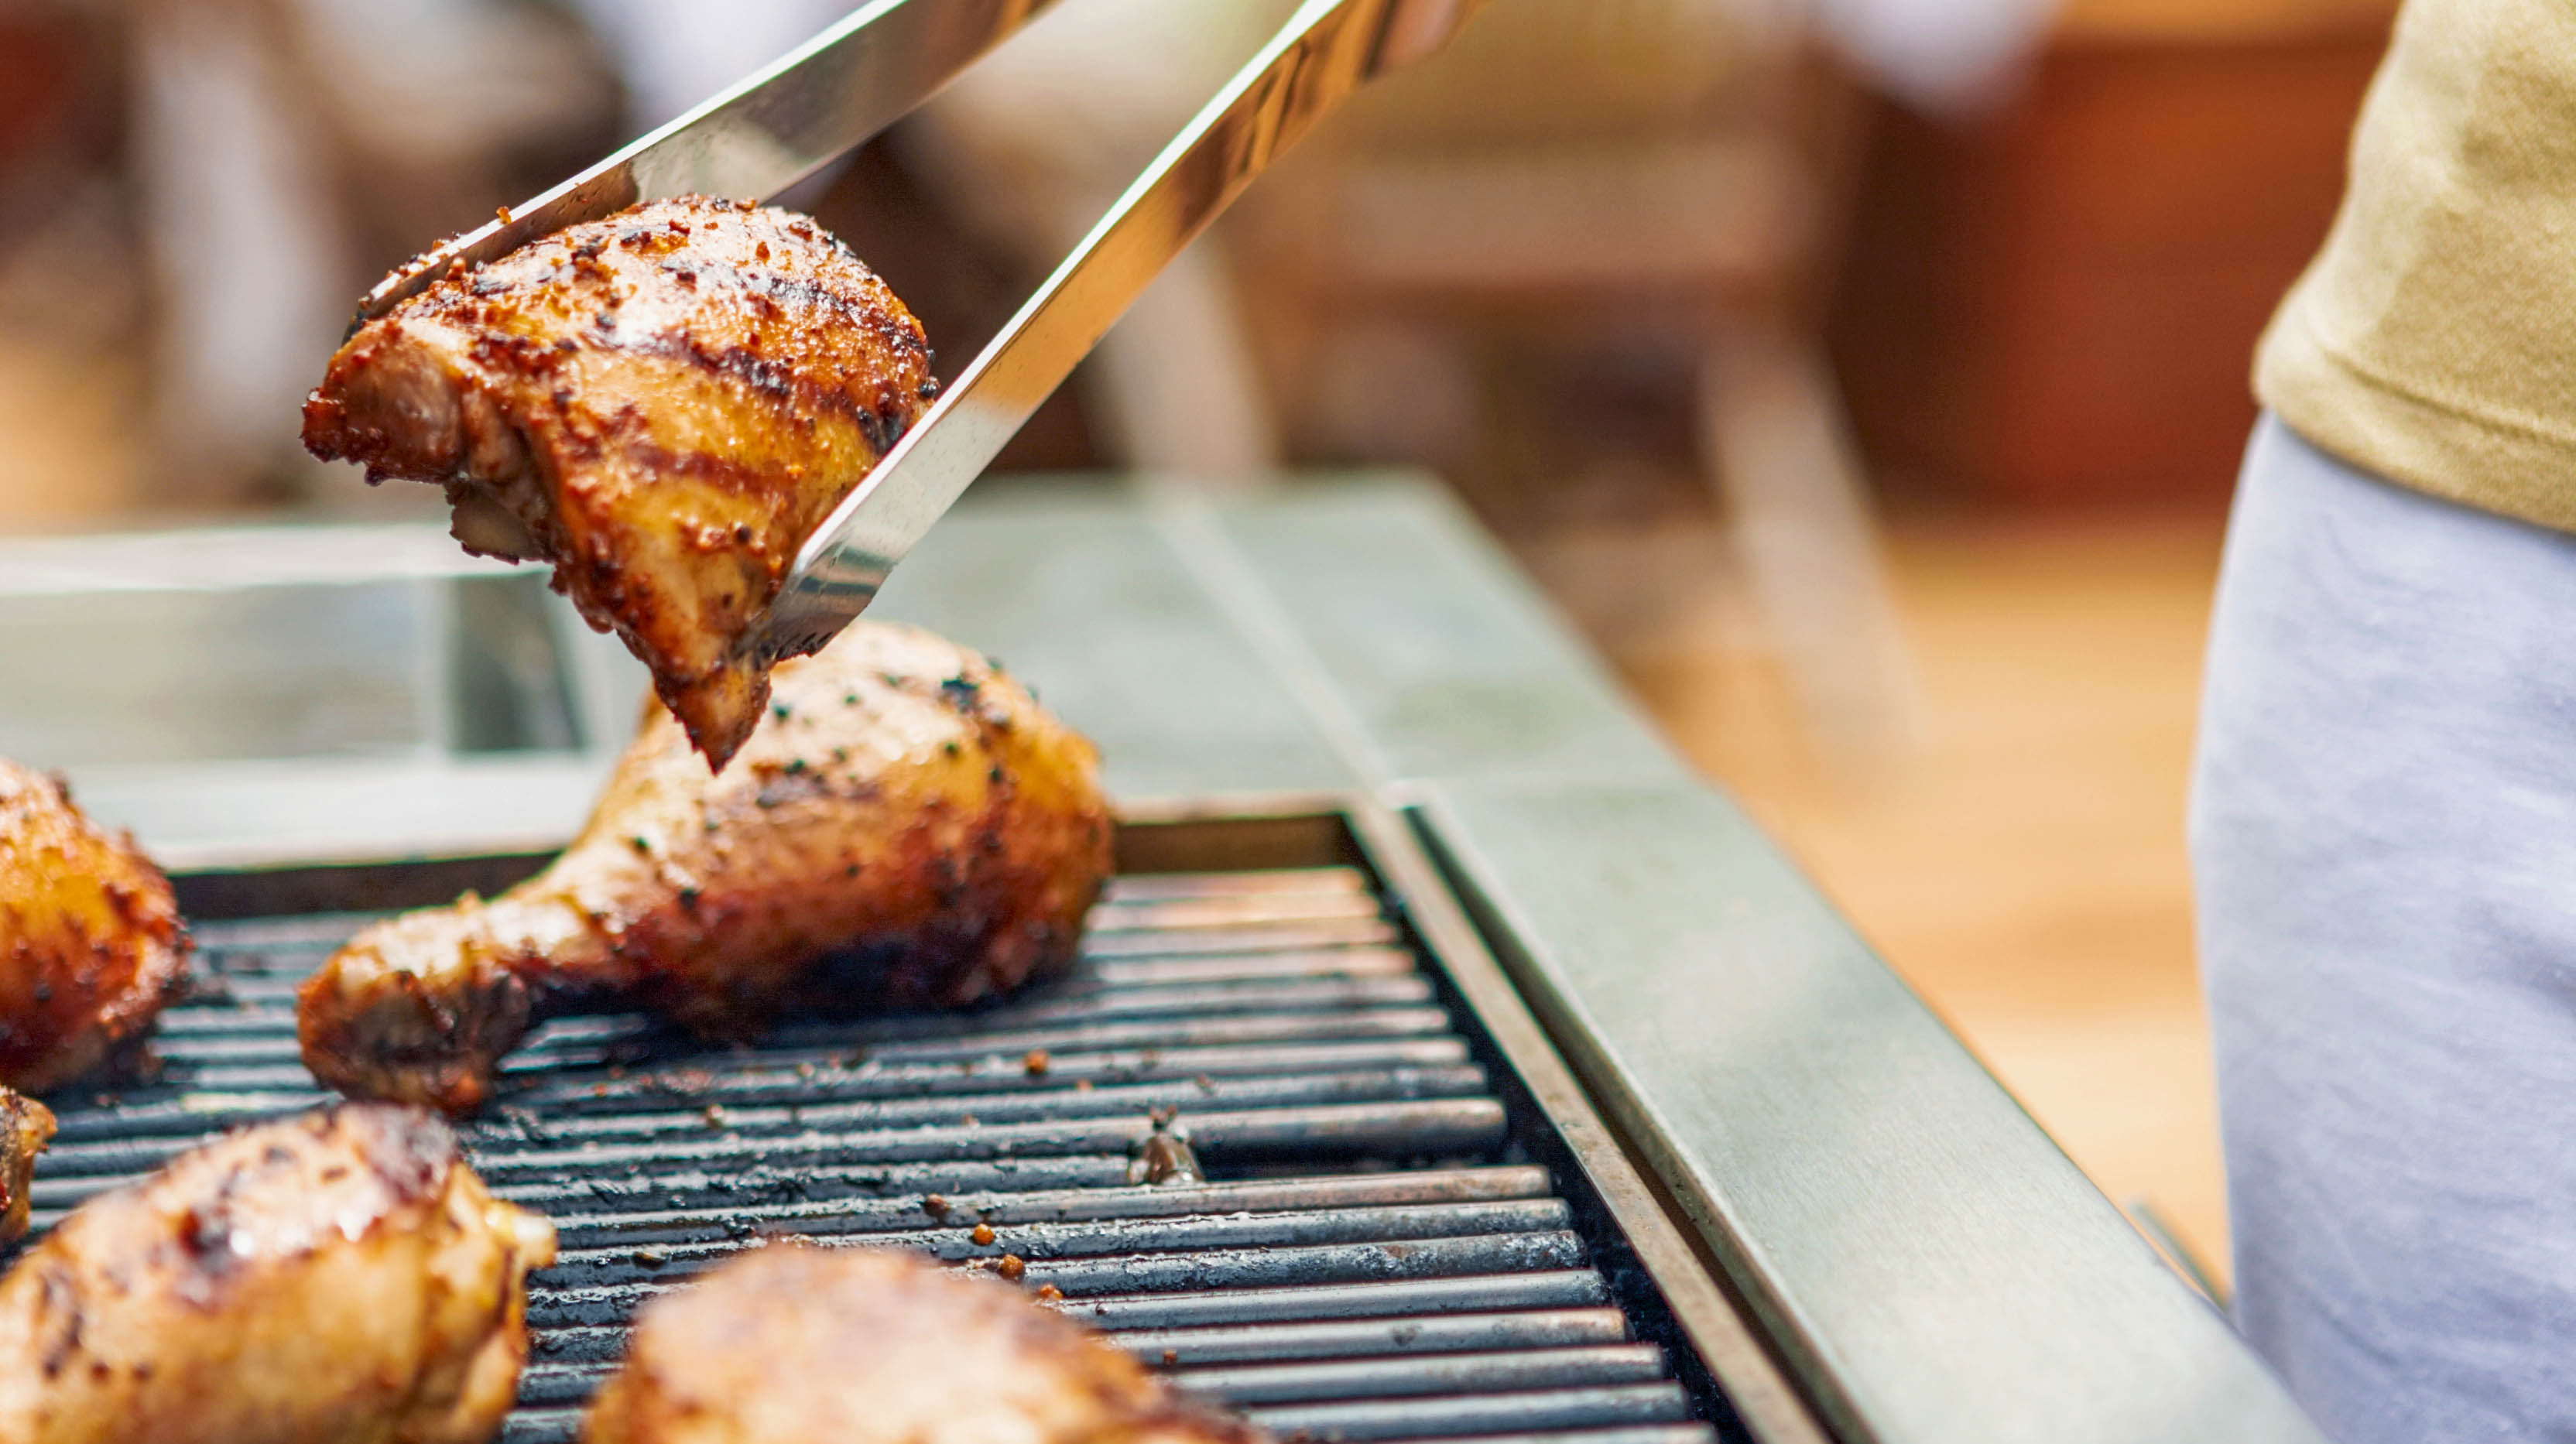 Tips to grilling chicken